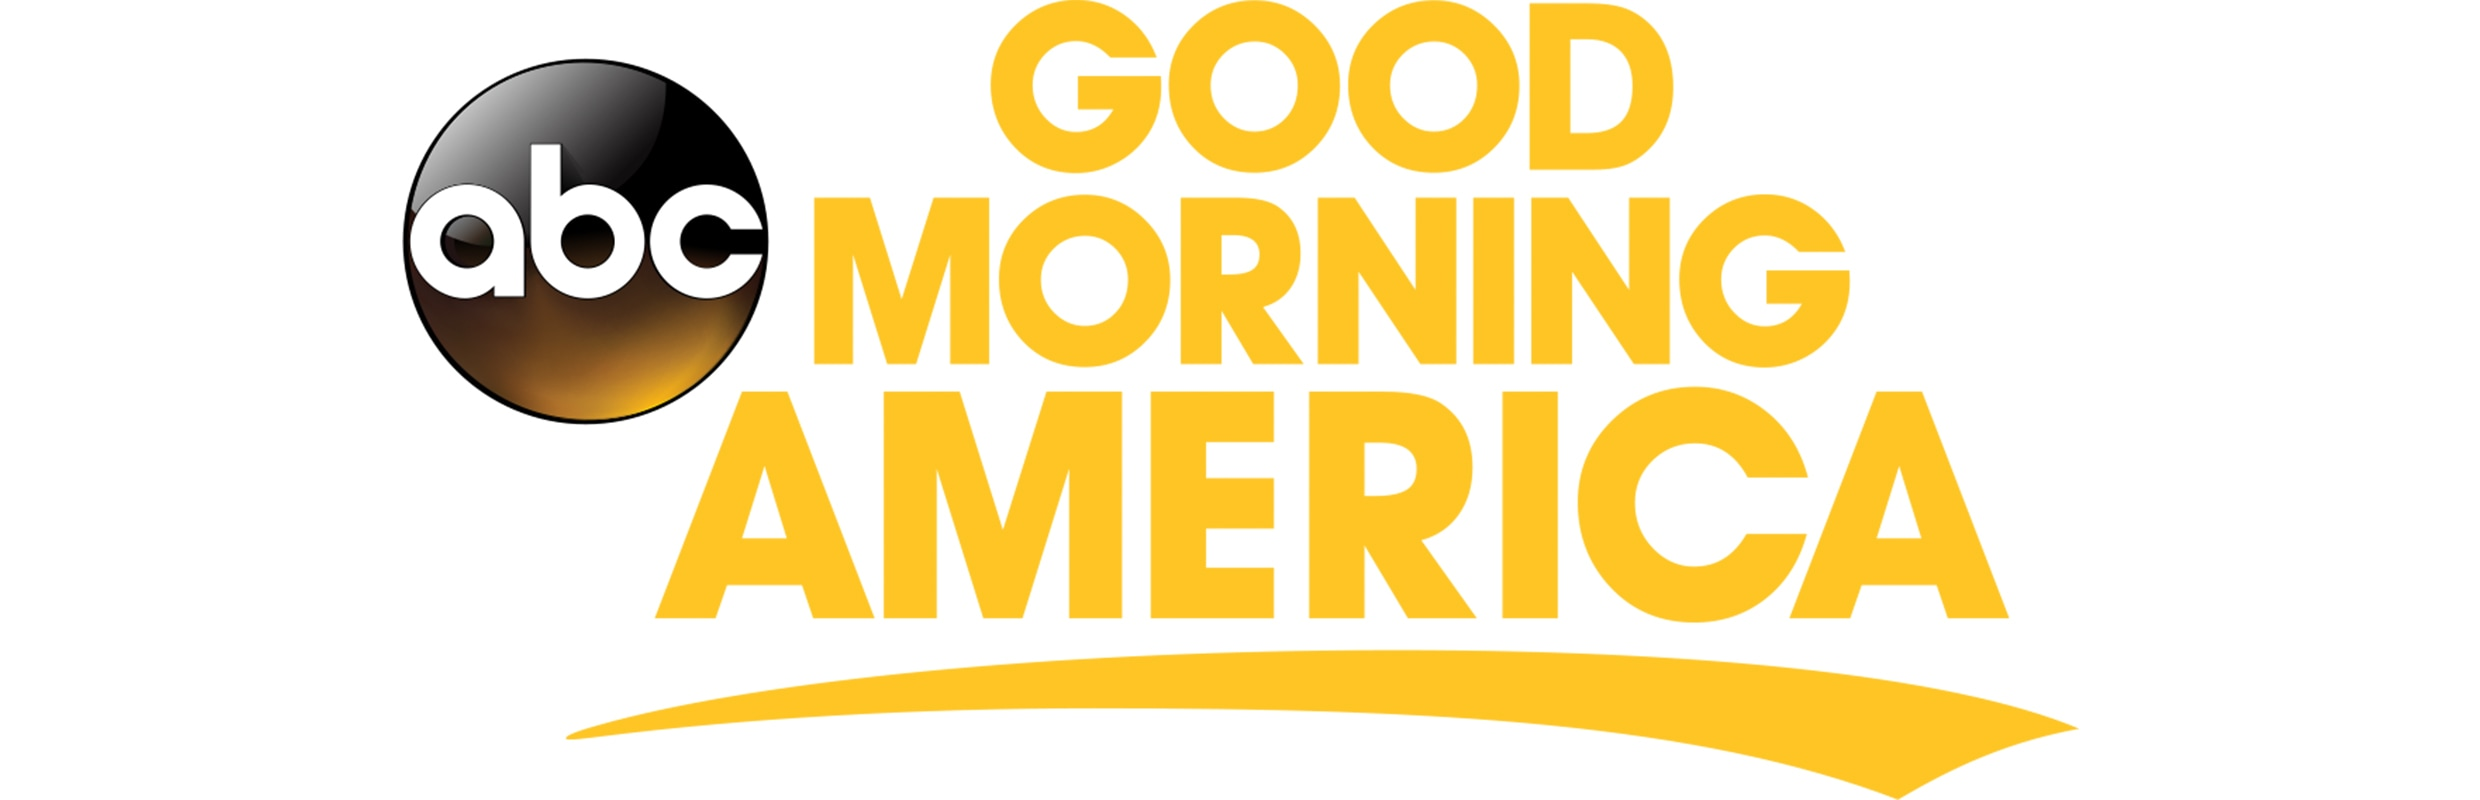 Good morning america selected